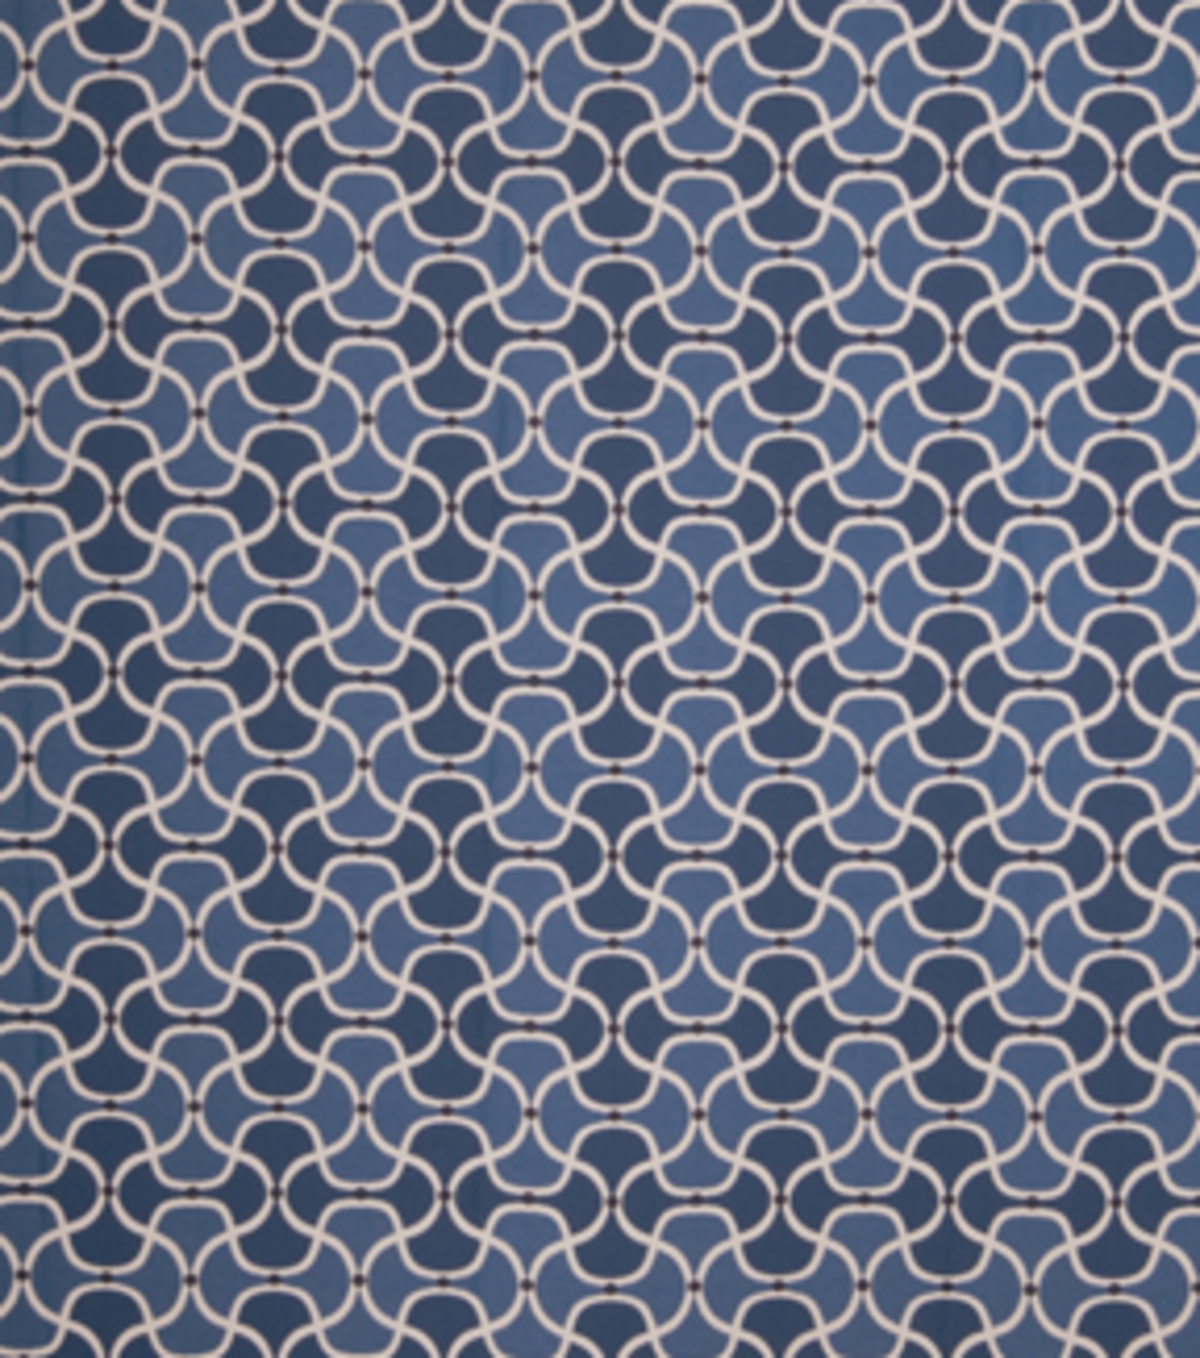 Home Decor 8\u0022x8\u0022 Fabric Swatch-Bella Dura Acker Whirlpool